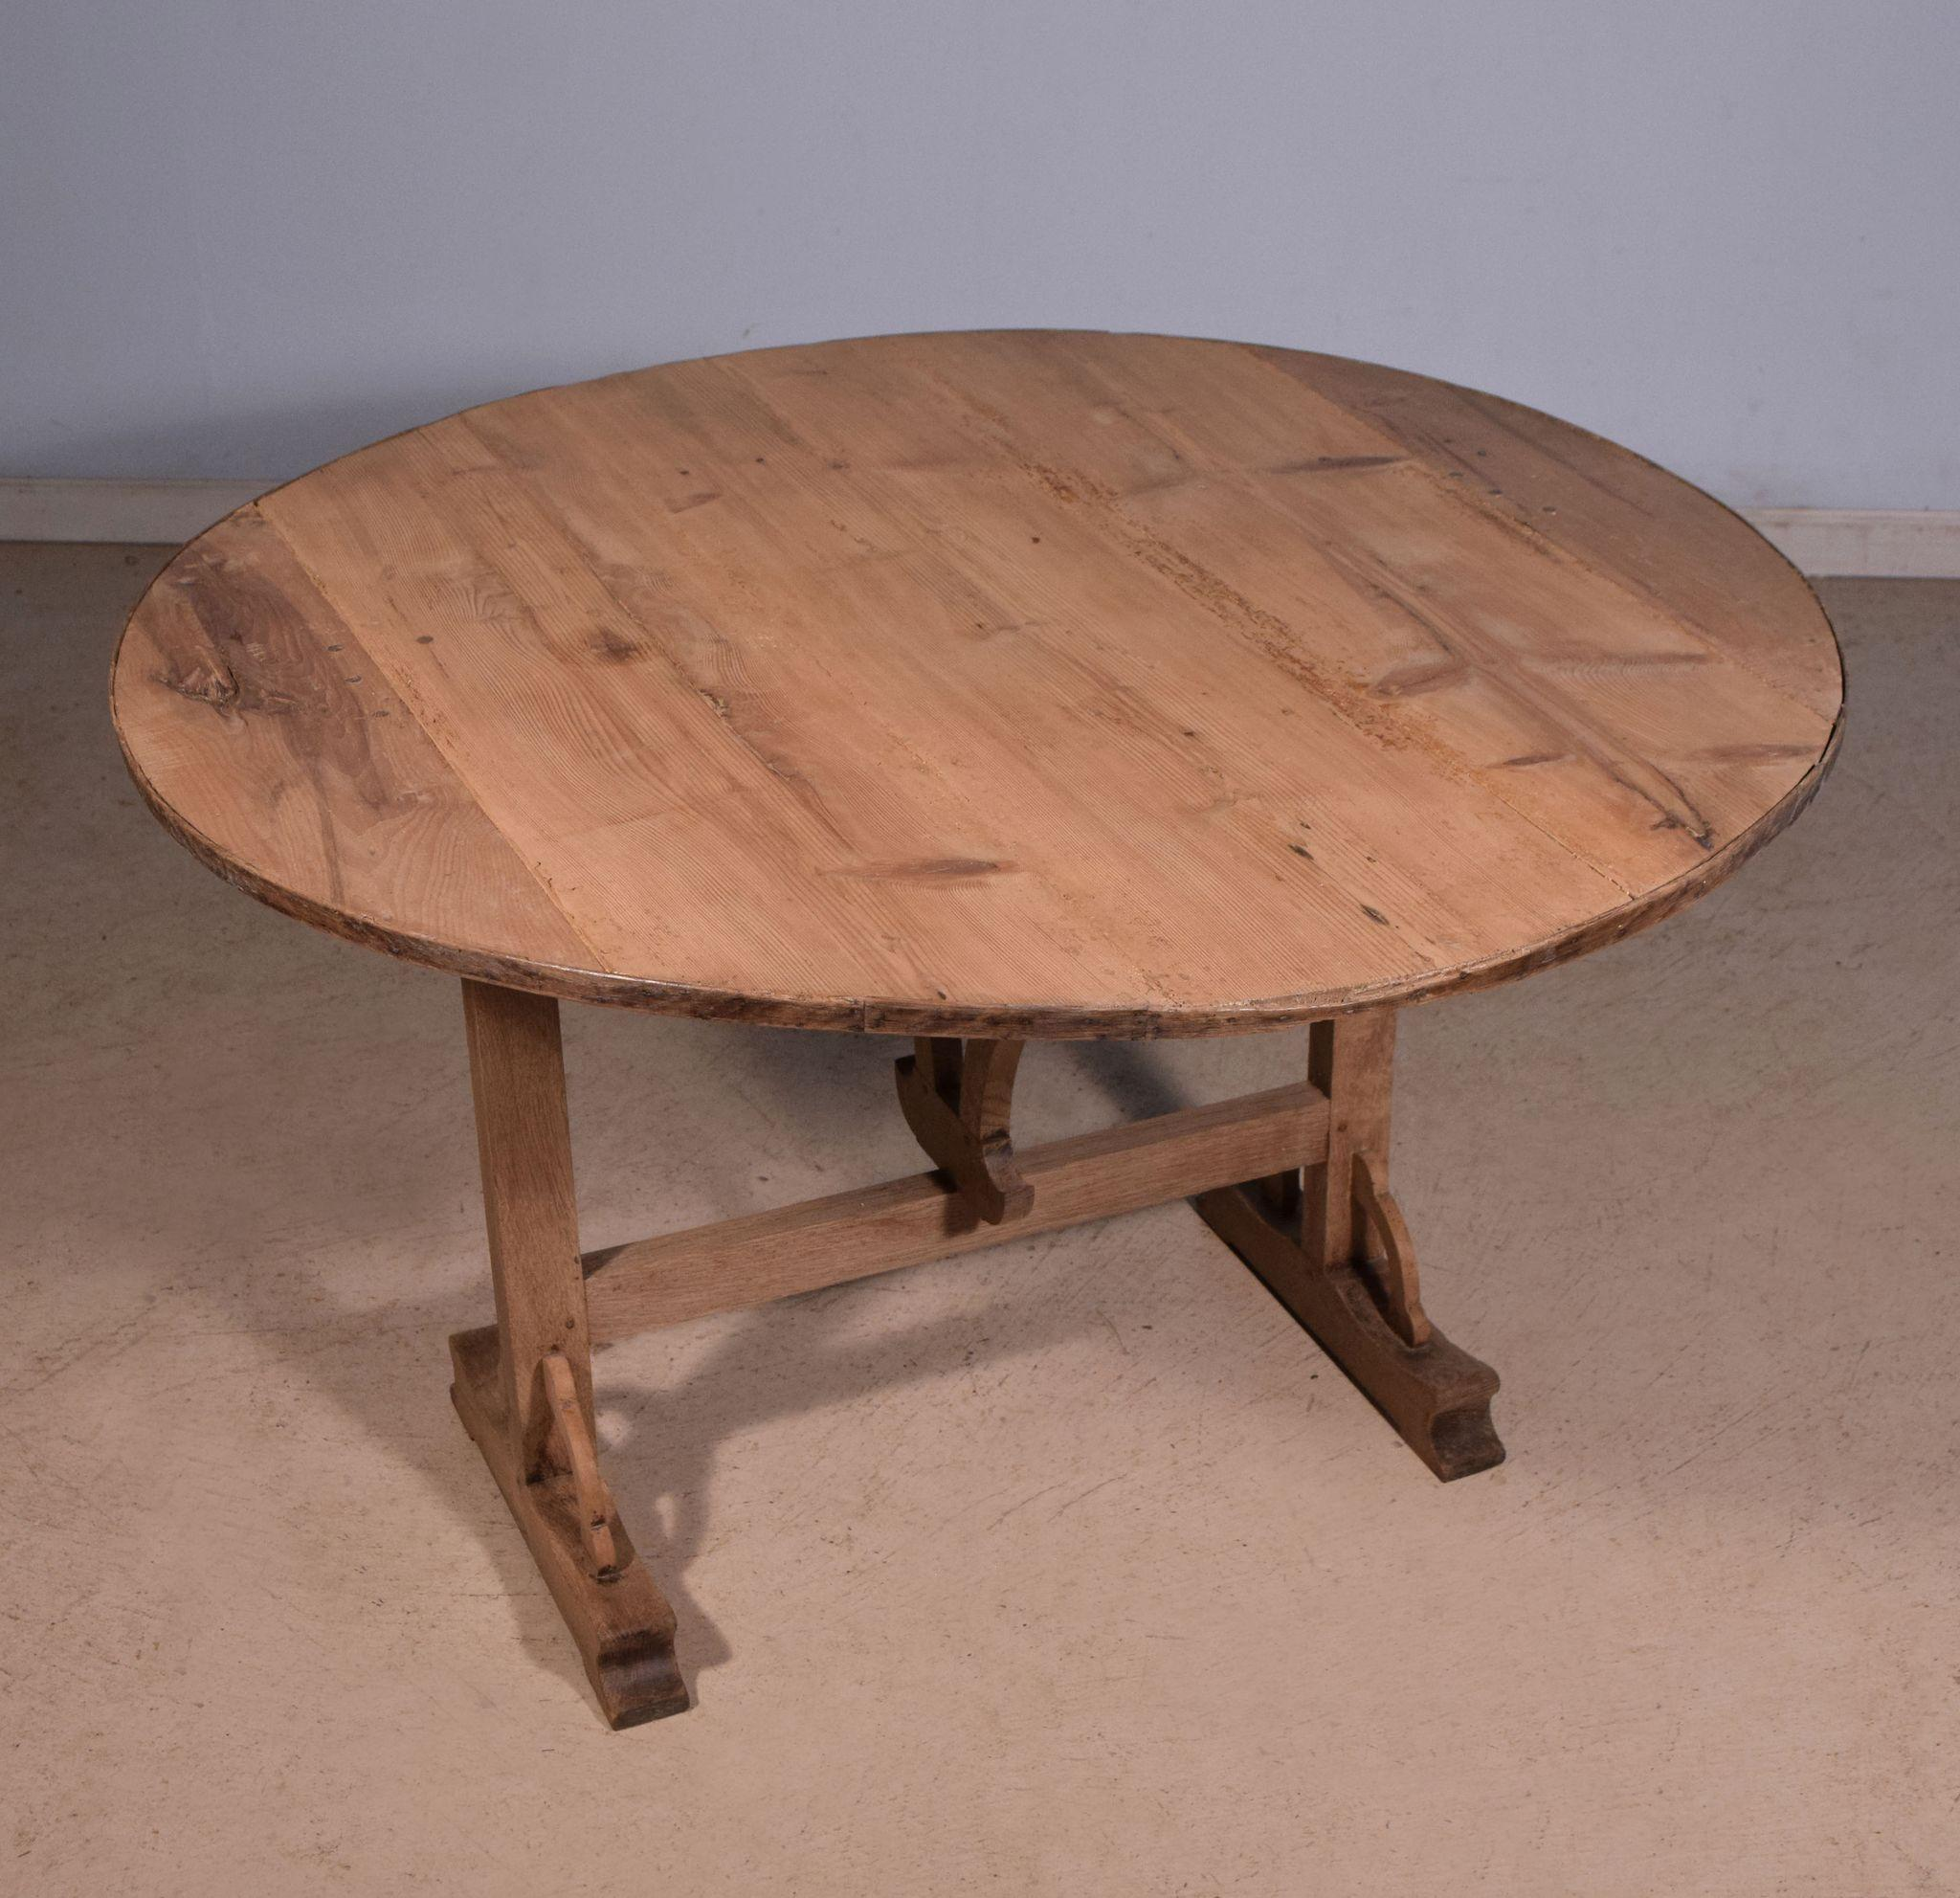 Antique French Wine Tasting Table Side Table with Tilt Top in Oak